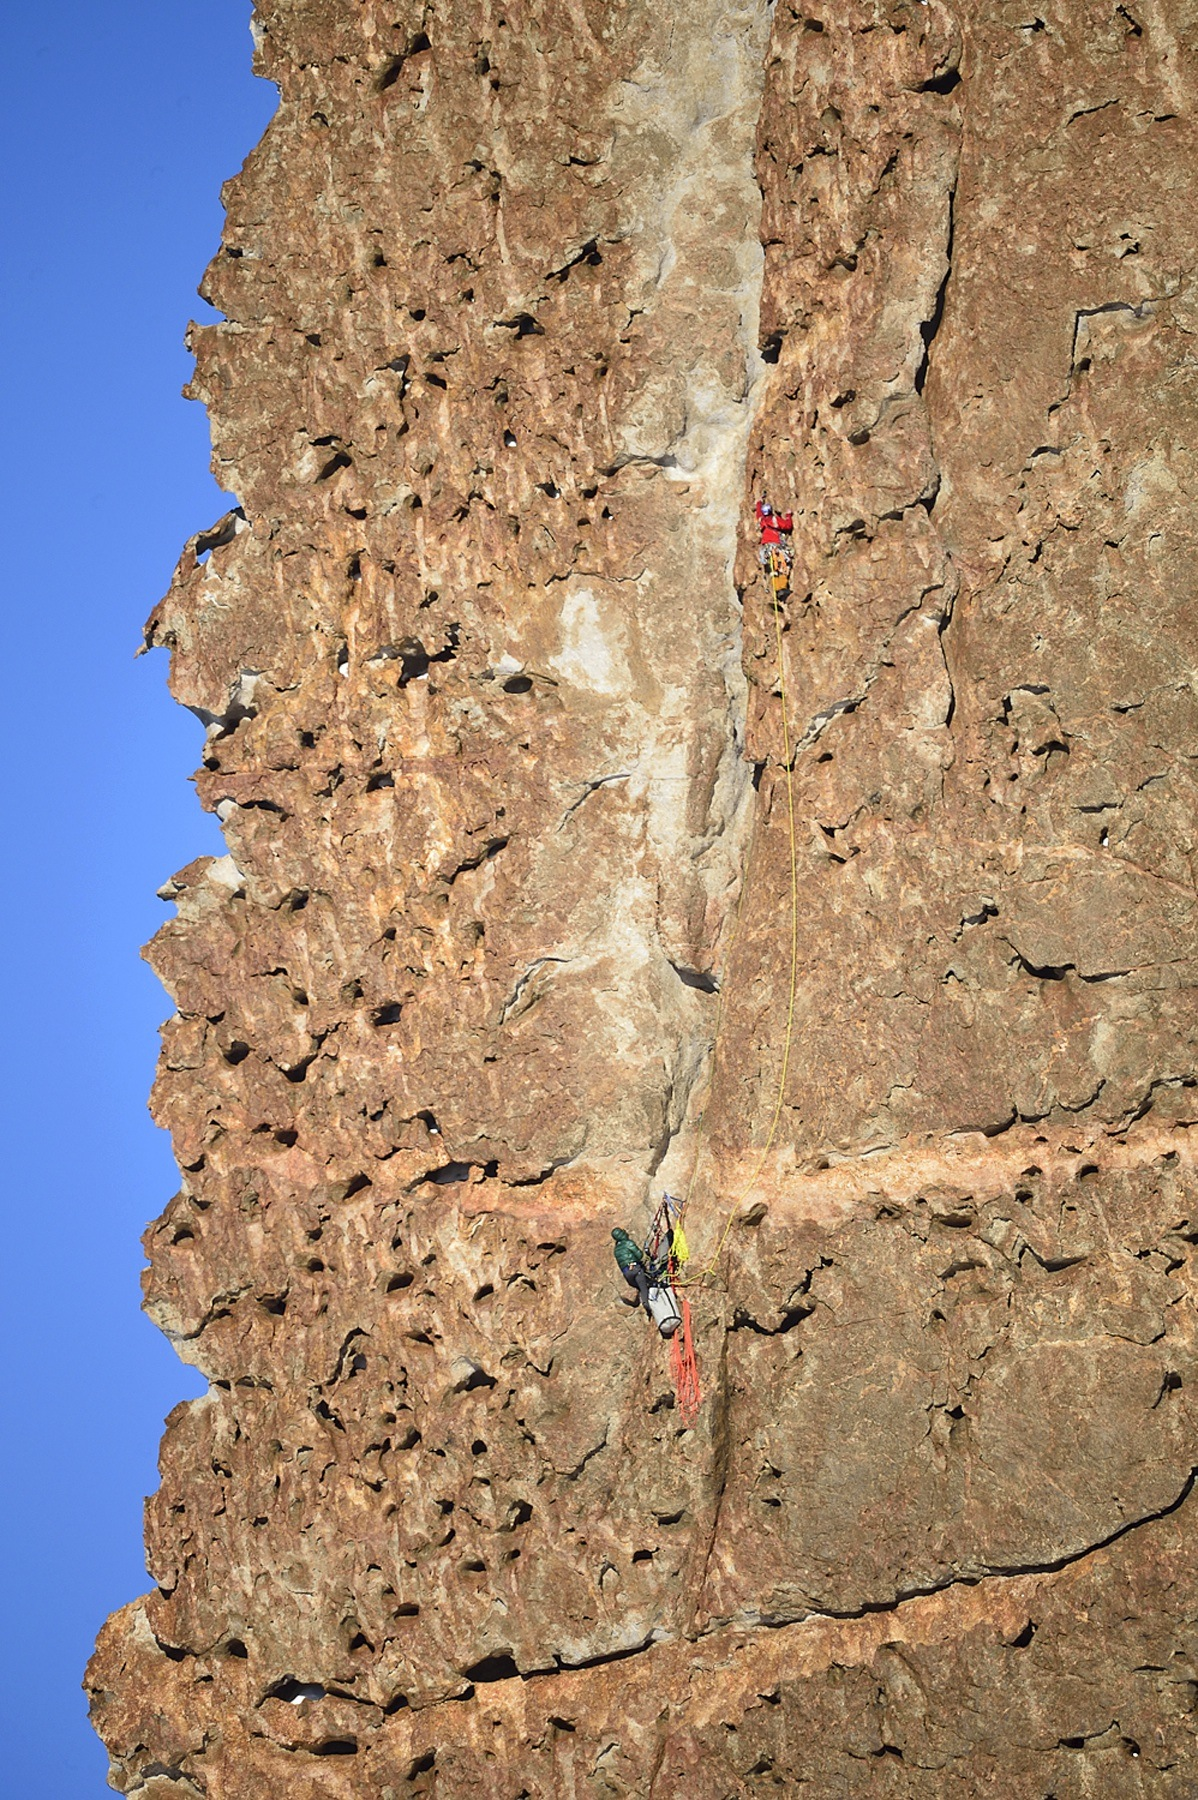 Mike Libecki and Freddie Wilkinson work through bizarre rock formations on the first ascent of Bertha's Tower.